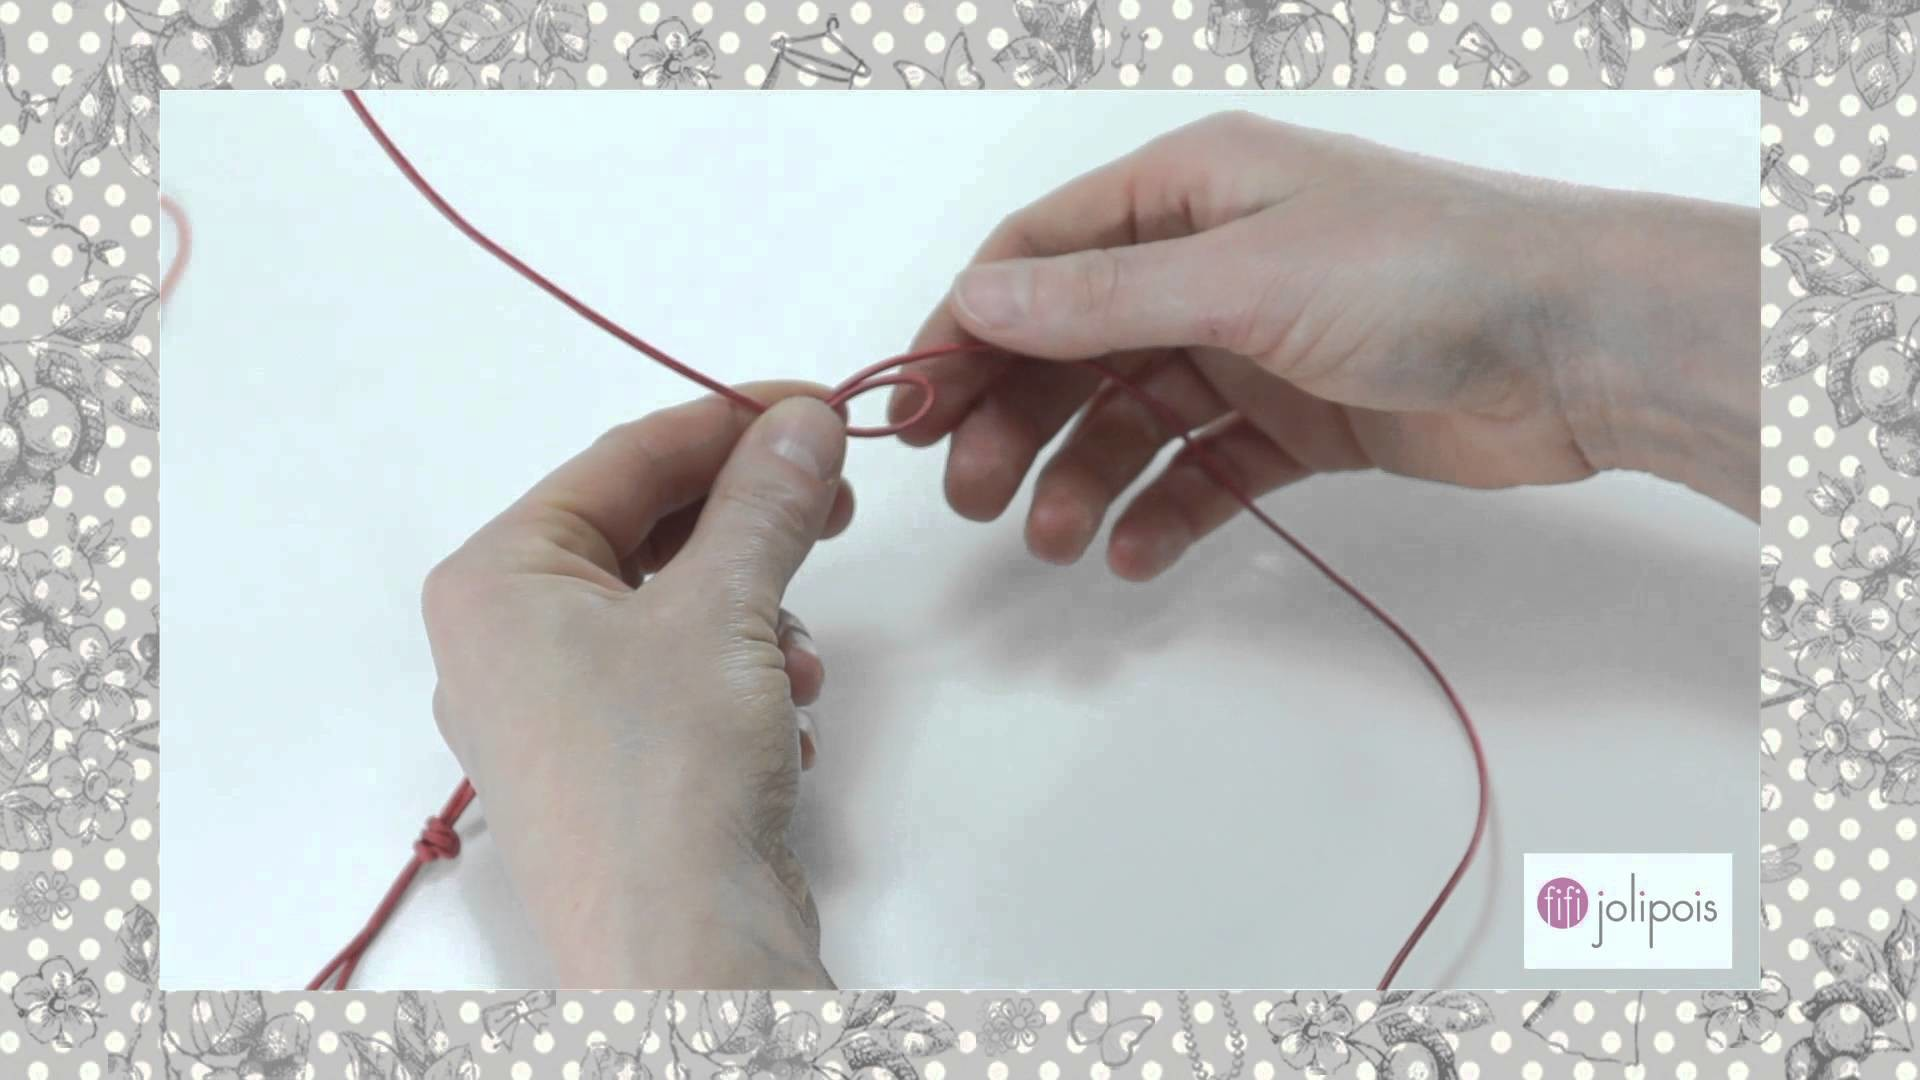 Fifi Jolipois Tutorial 5: Faire un Noeud Coulissant